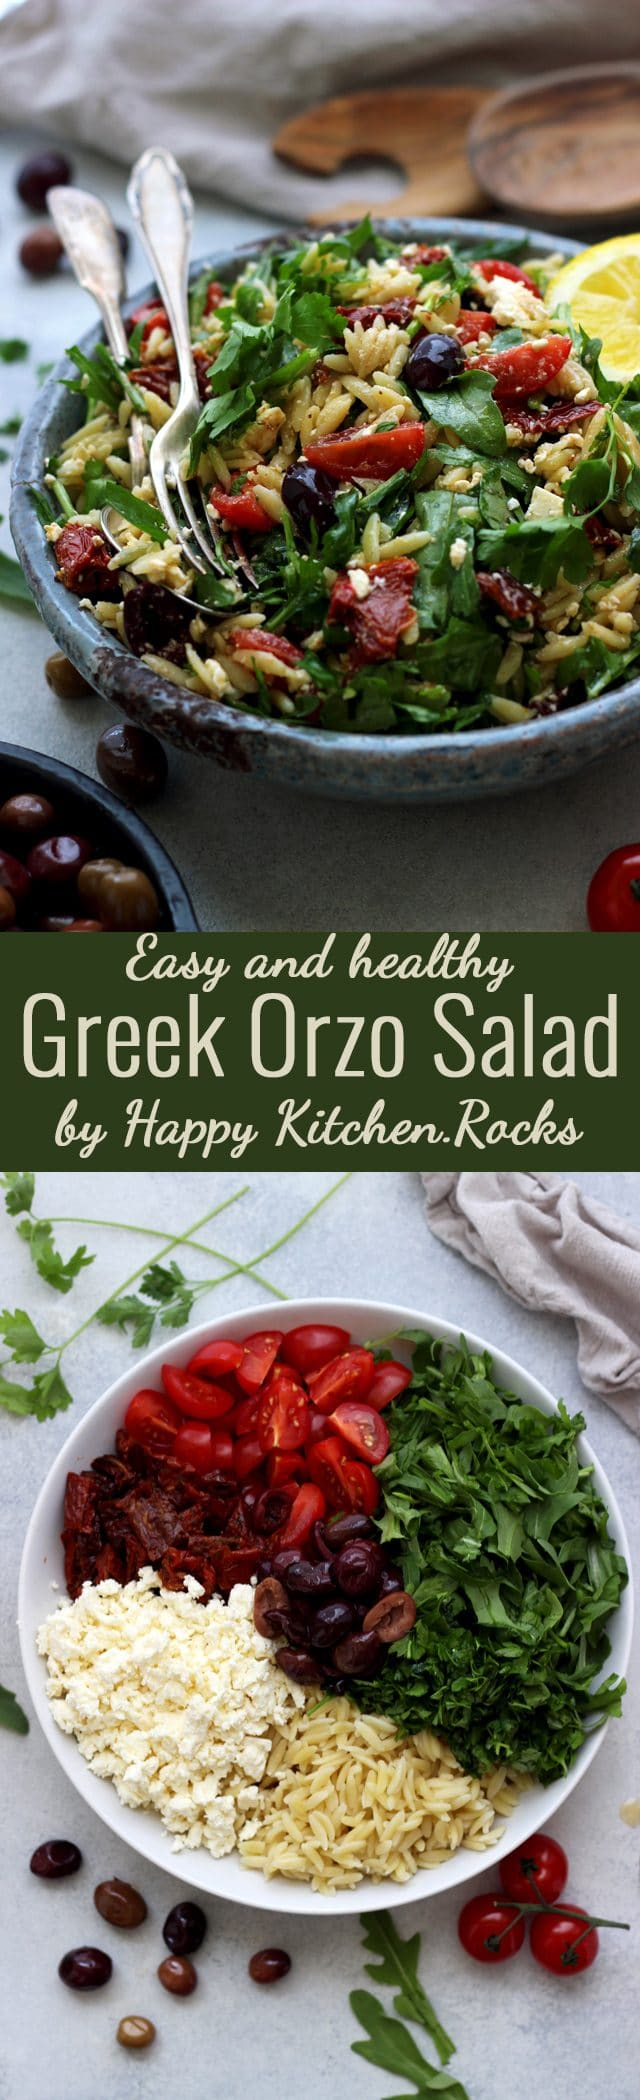 This easy Greek Orzo Salad is perfect for picnics, potlucks, BBQ and get togethers. Whenever you need an easy and healthy side dish, that is guaranteed to disappear first, make this gorgeous Greek orzo salad! #pastasalad #orzo #sidedish #bbq #Greekfood #Mediterraneanfood #pasta #salad #summersalad #summerveggies #healthyrecipes #orzopastasalad #pastasaladrecipe #saladrecipes #recipe